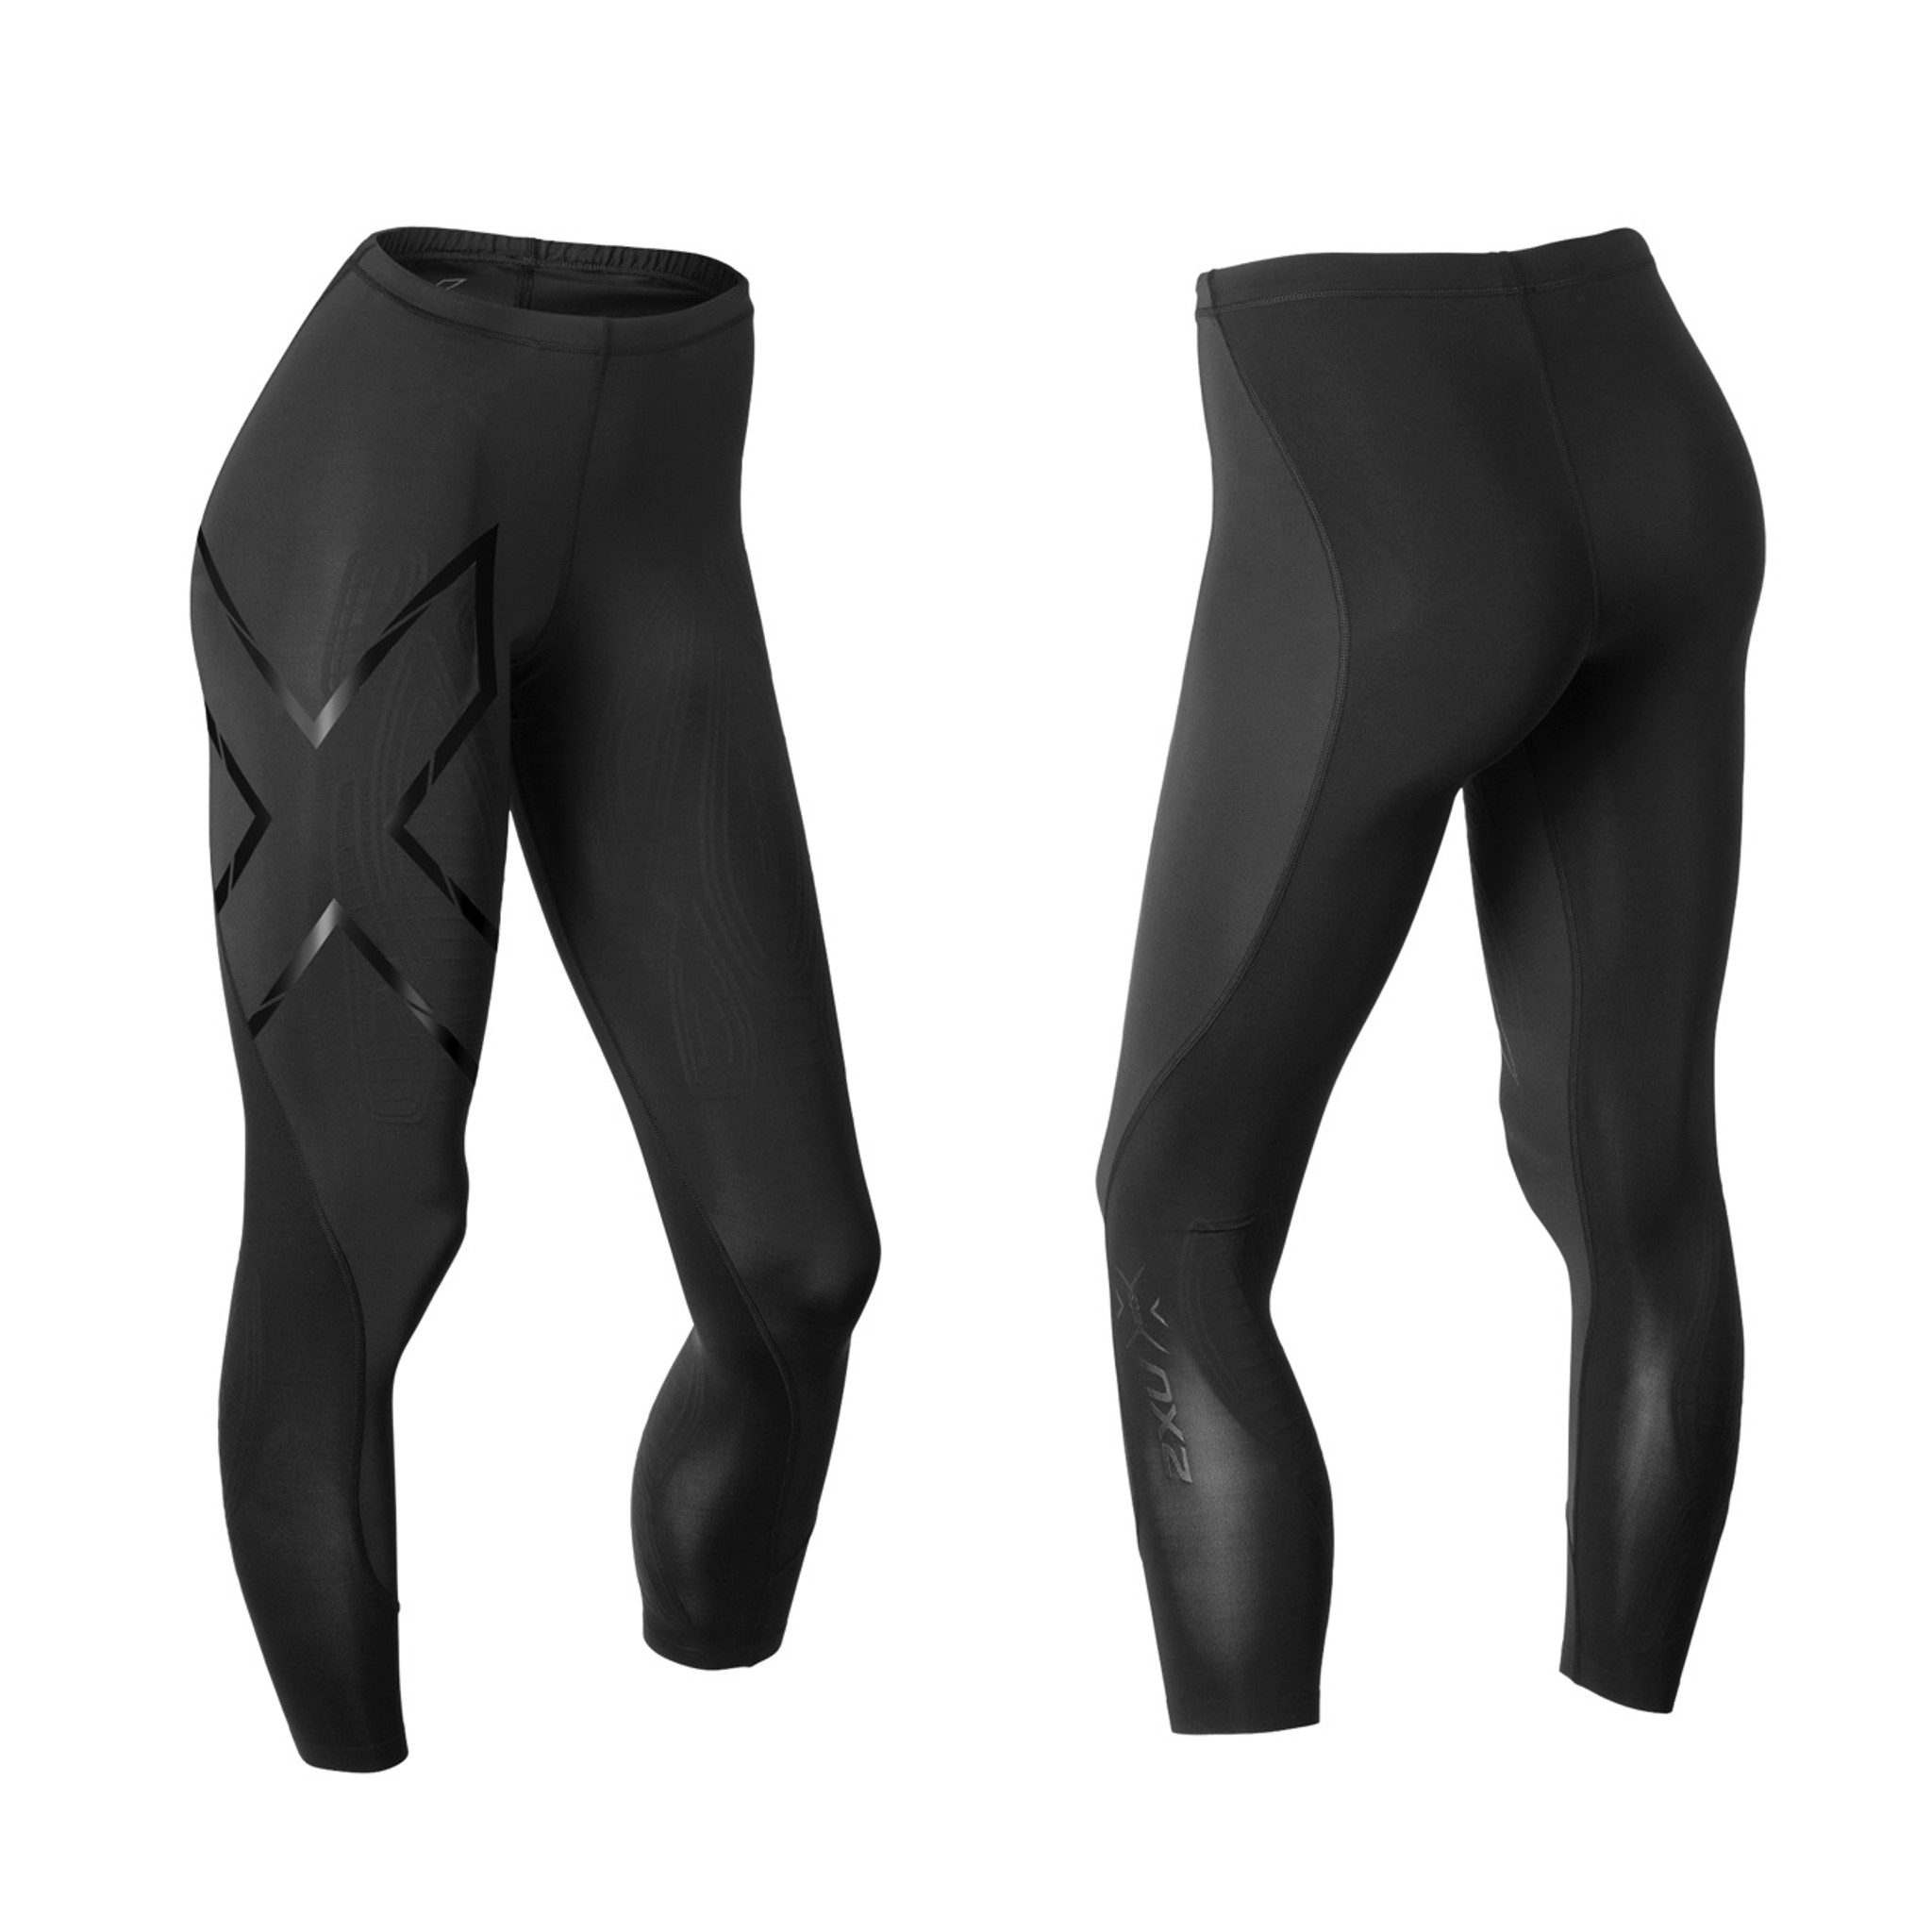 cd2f6c8923 ... 2XU - Women's MCS Thermal Compression Tights - AW17 · Black/Nero. Black/ Gold